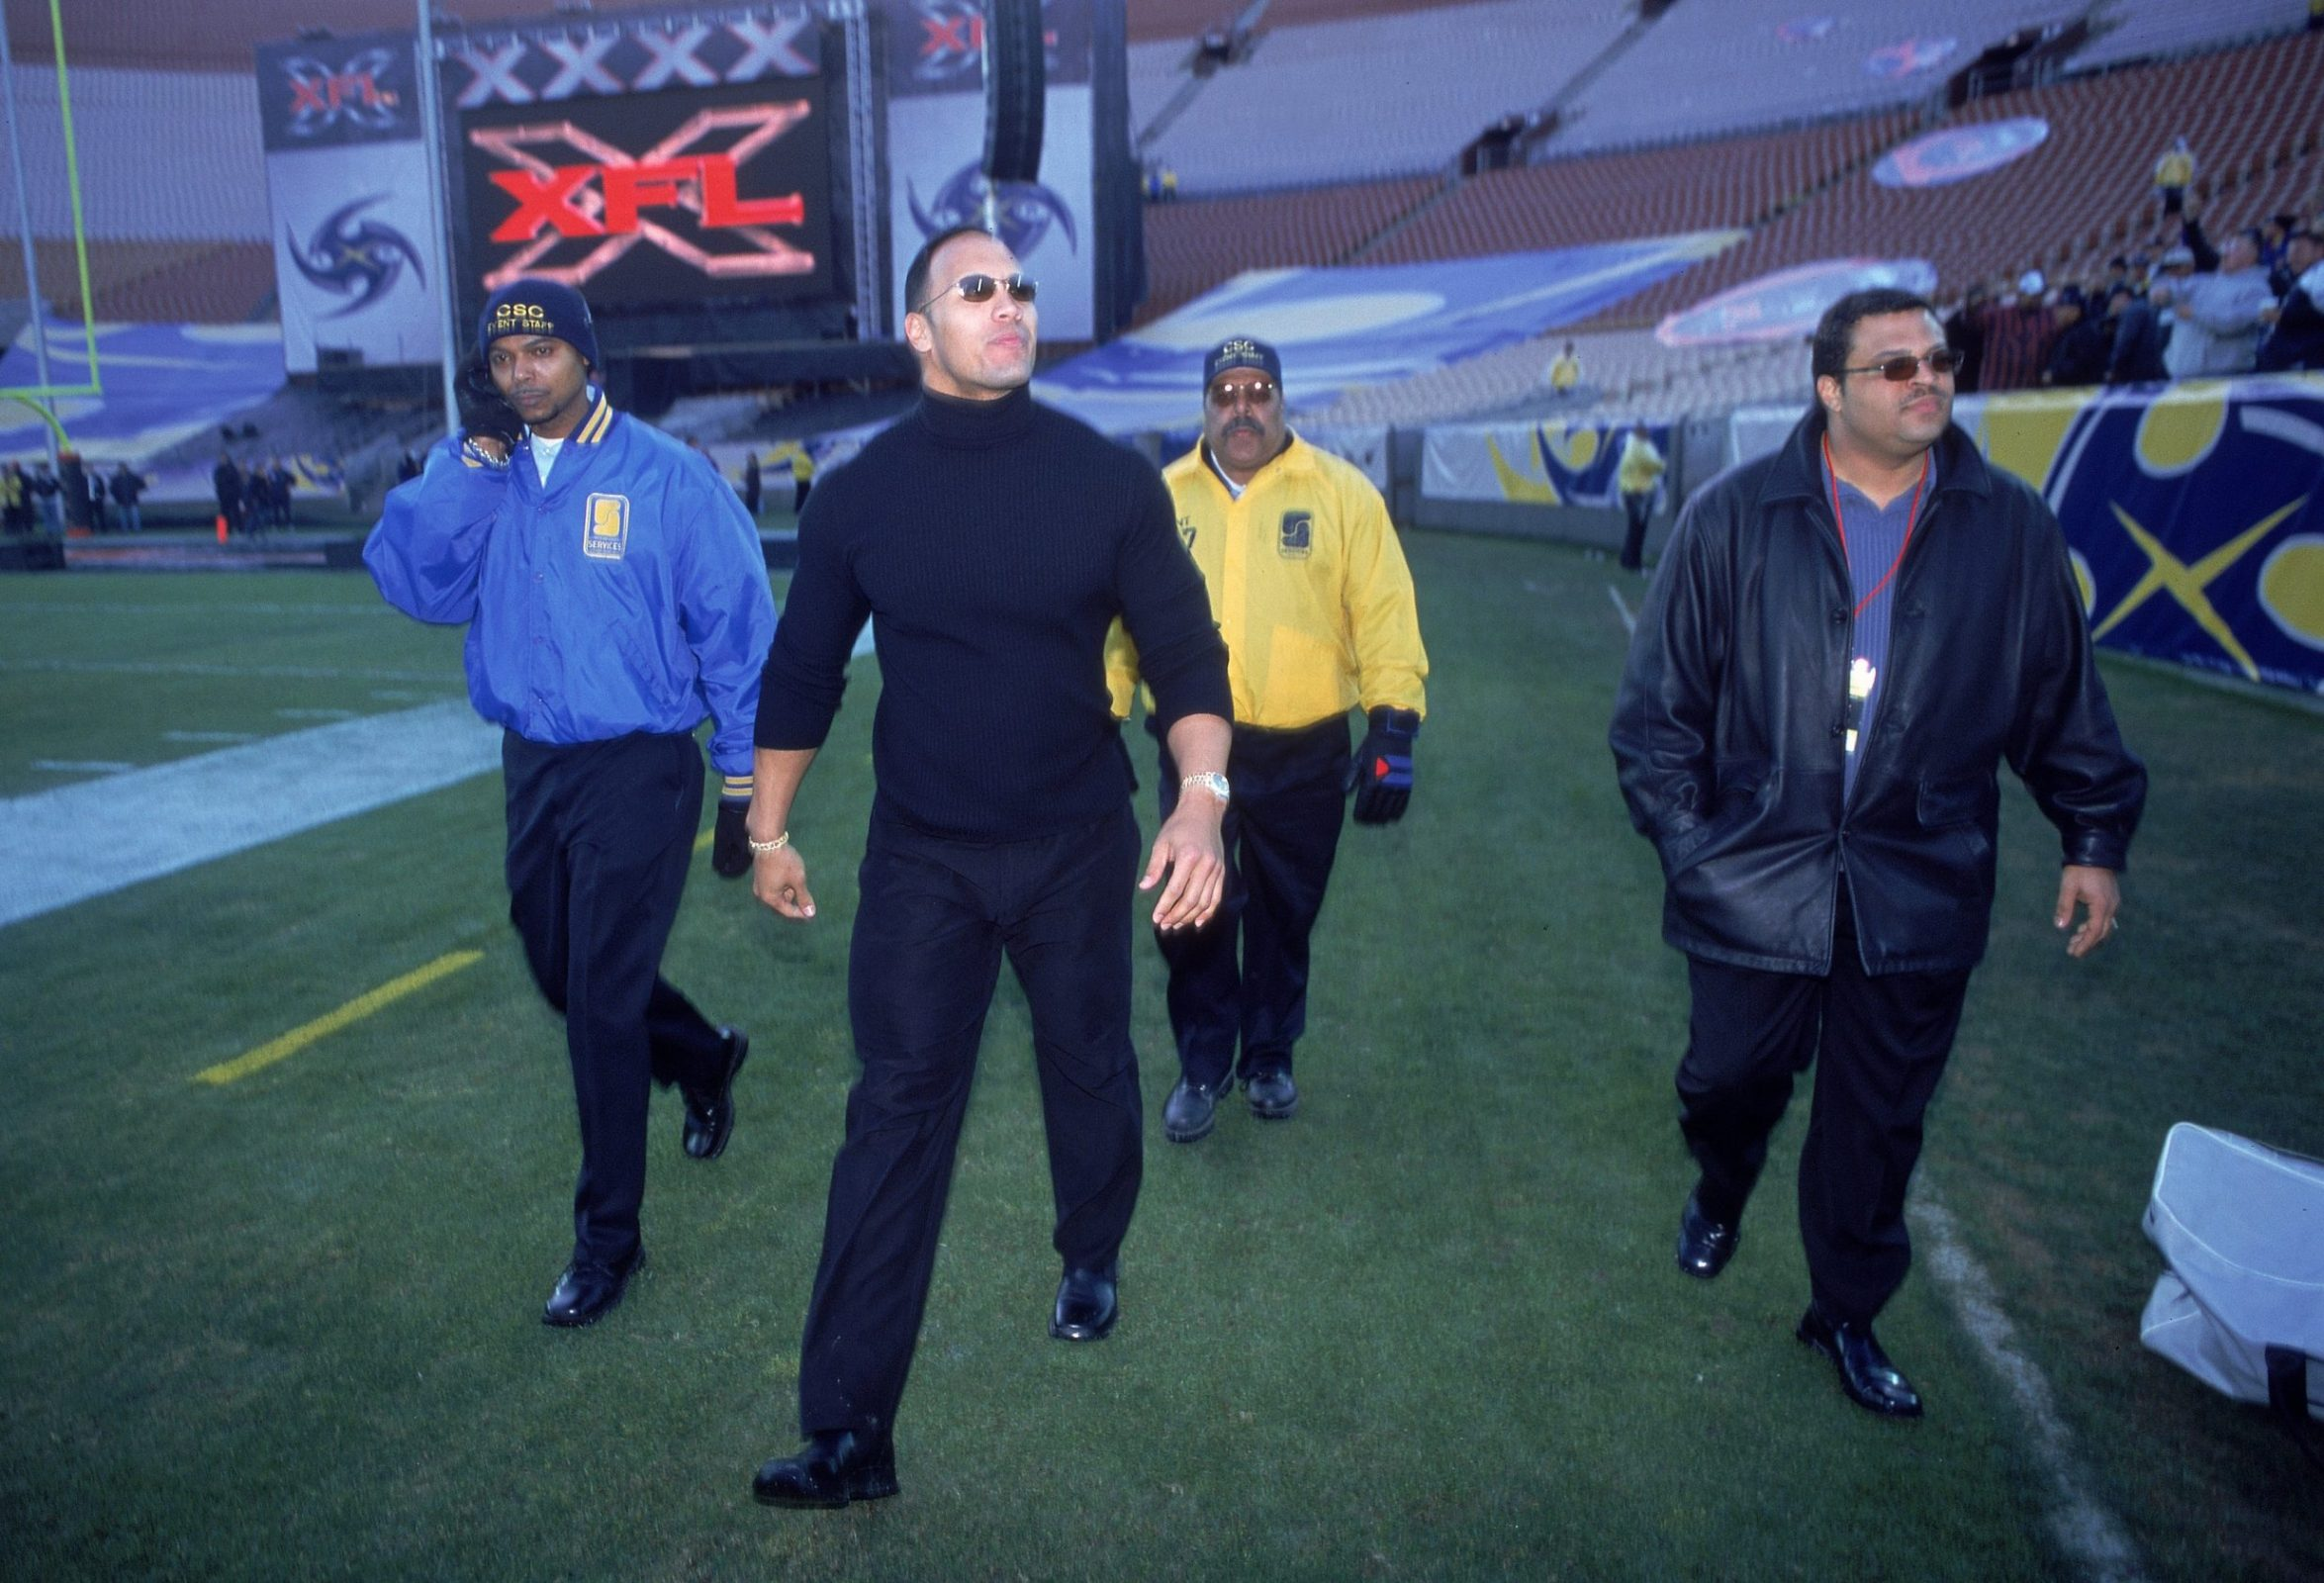 The Rock greets fans before an XFL game